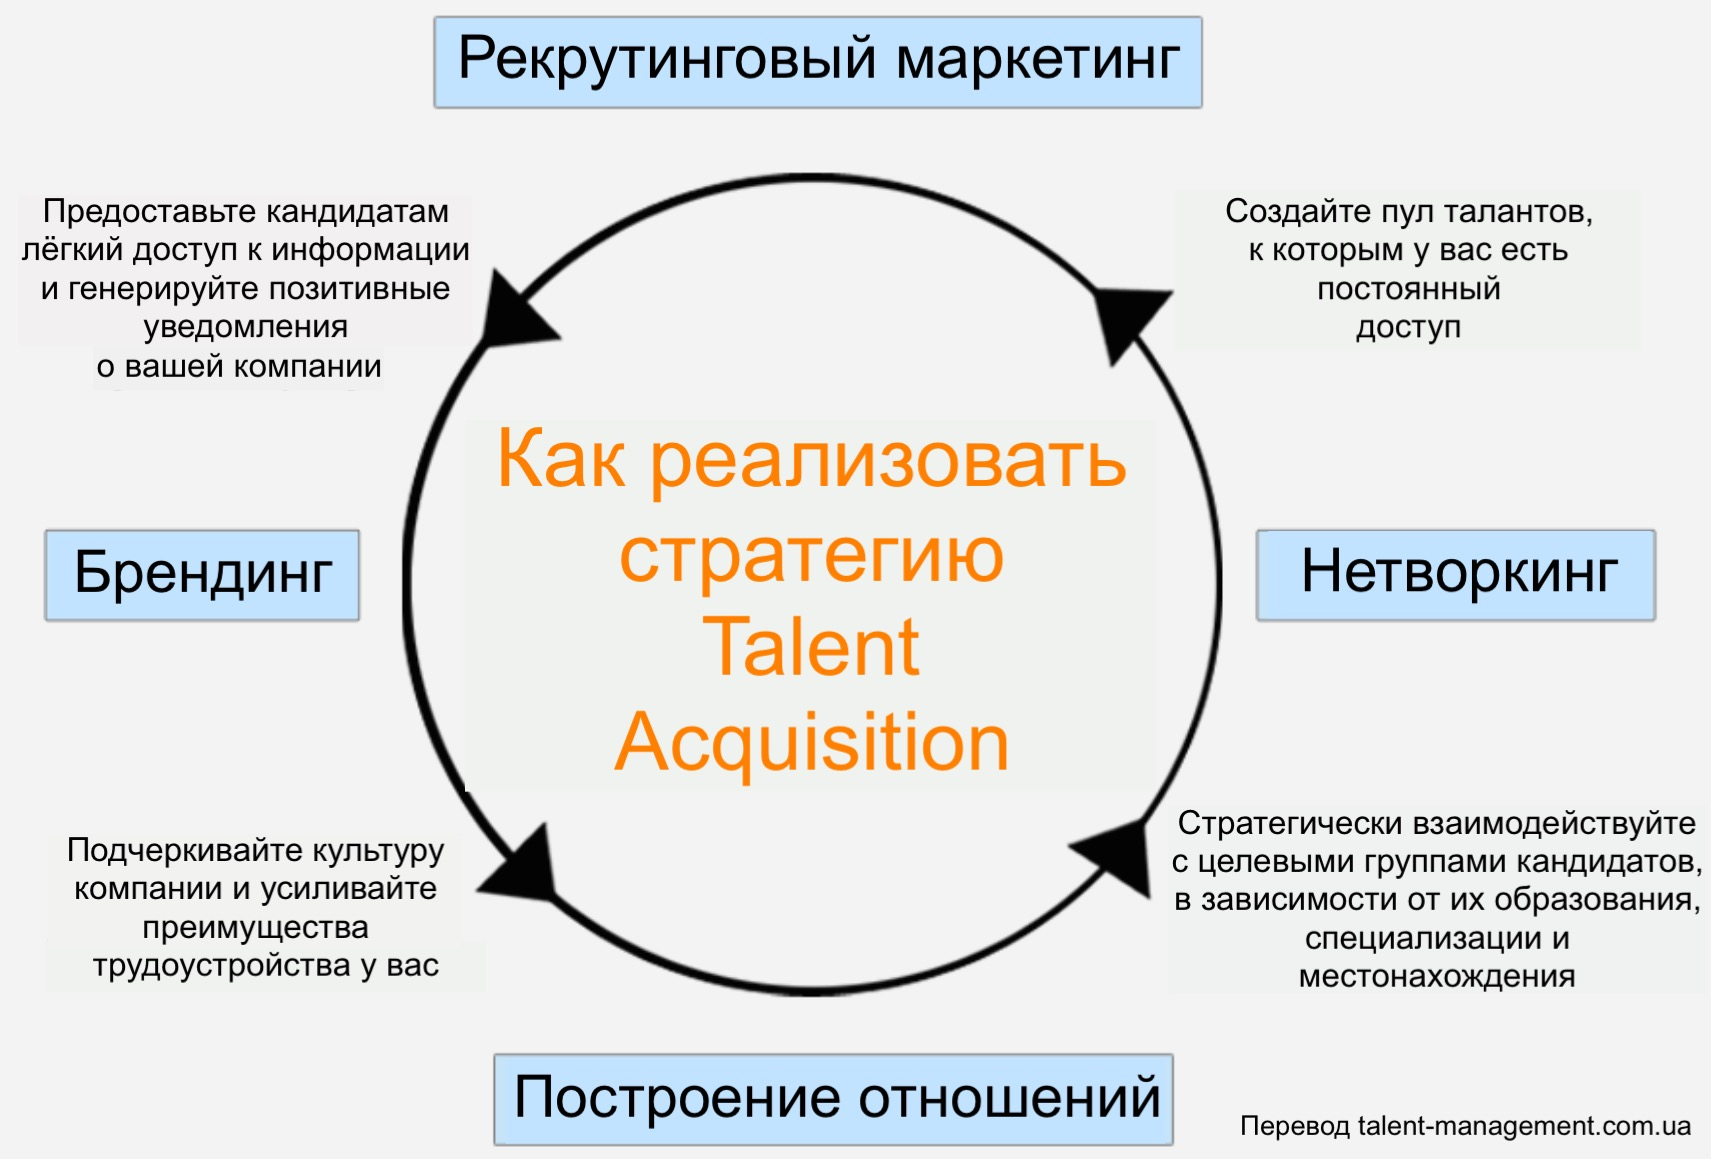 Стратегия Talent Acquisition